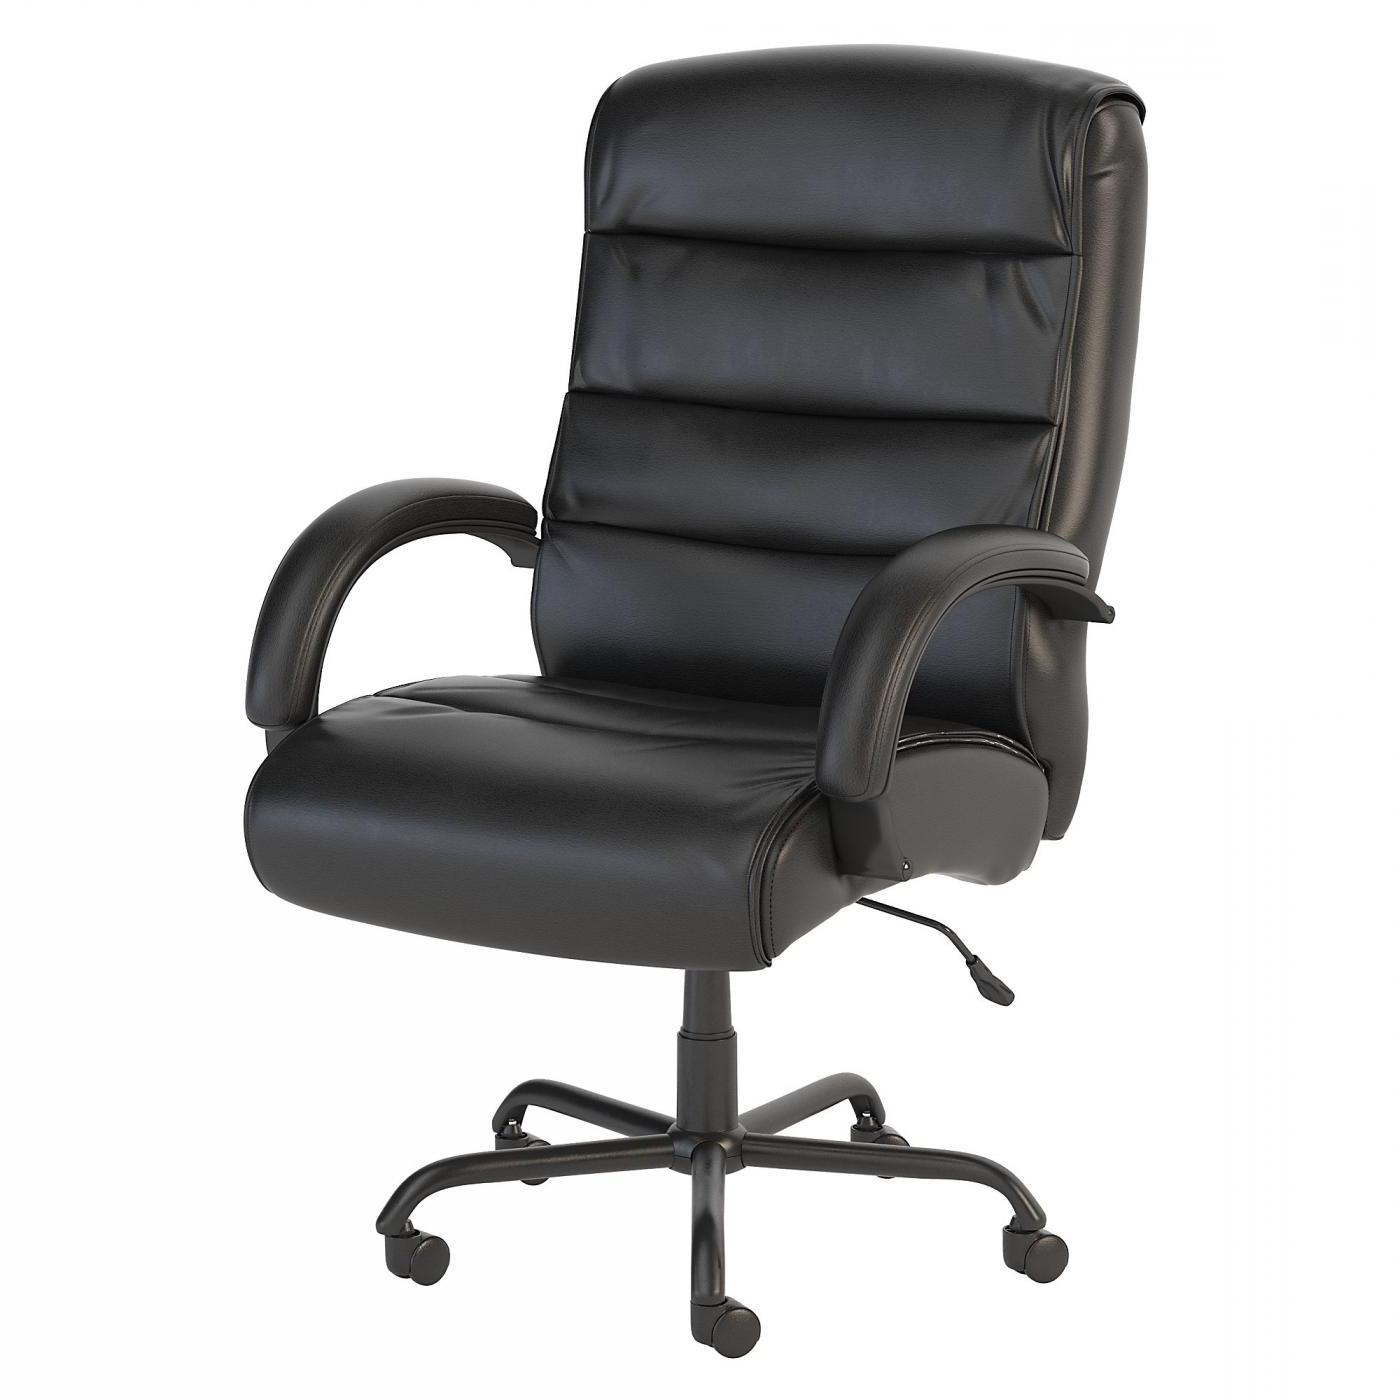 BUSH BUSINESS FURNITURE SOFT SENSE BIG AND TALL HIGH BACK LEATHER EXECUTIVE OFFICE CHAIR. FREE SHIPPING.